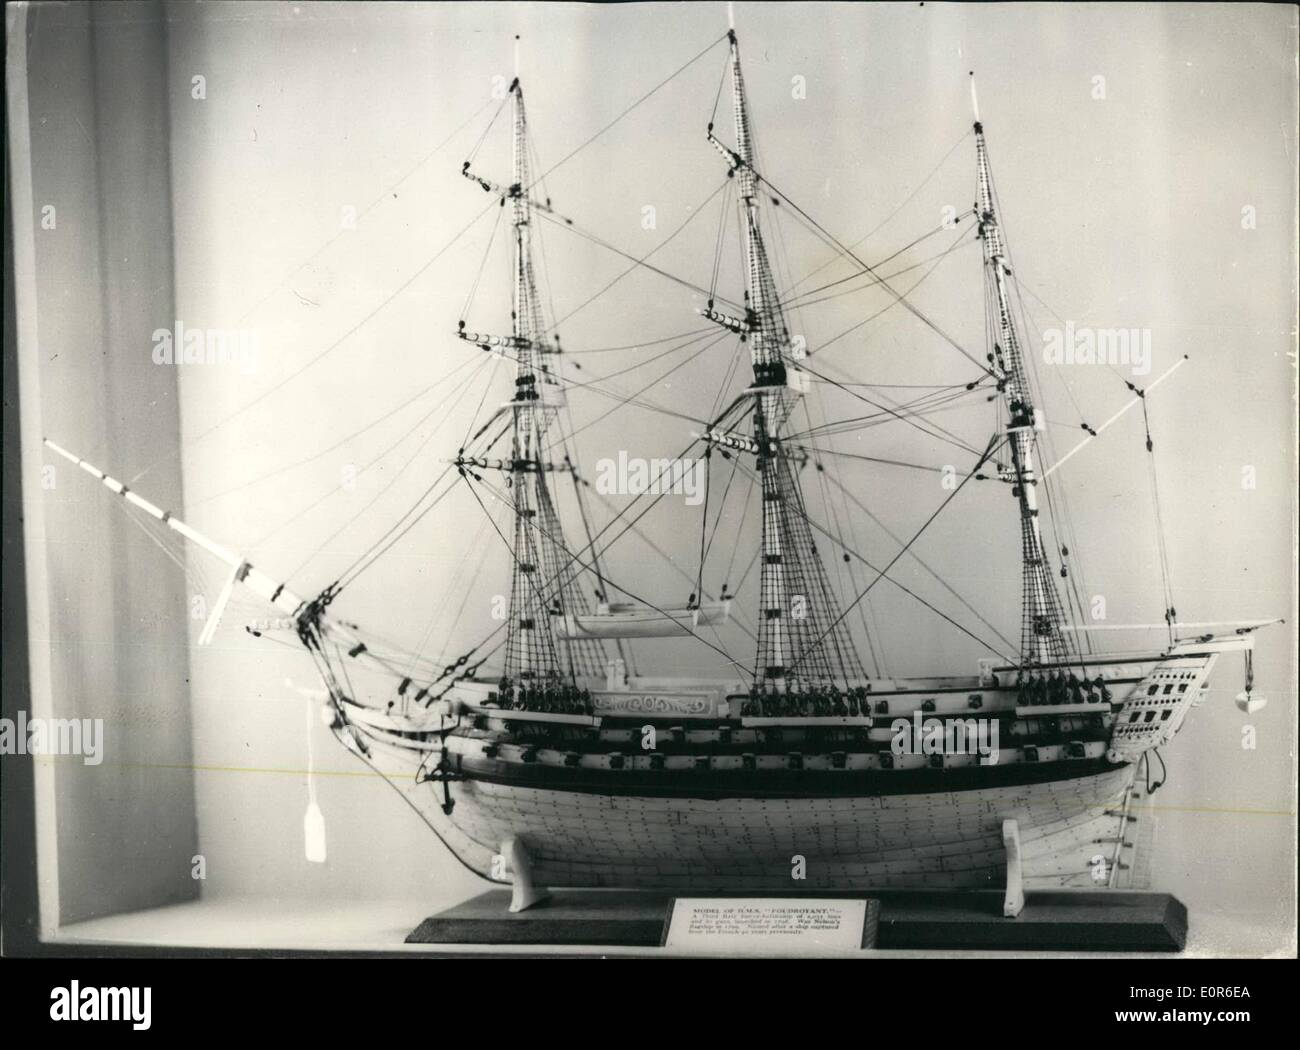 Jun. 06, 1958 - Press Preview Of The Antique Dealers' Fair: A Press Preview was held today of the Antique Dealers' Fair and Exhibition, which will be opened tomorrow by Princess Alexandra at Grosvenor House. Photo shows A model of H.M.S. Foudroyant, made in bone and ivory, valued at 325. - Stock Image